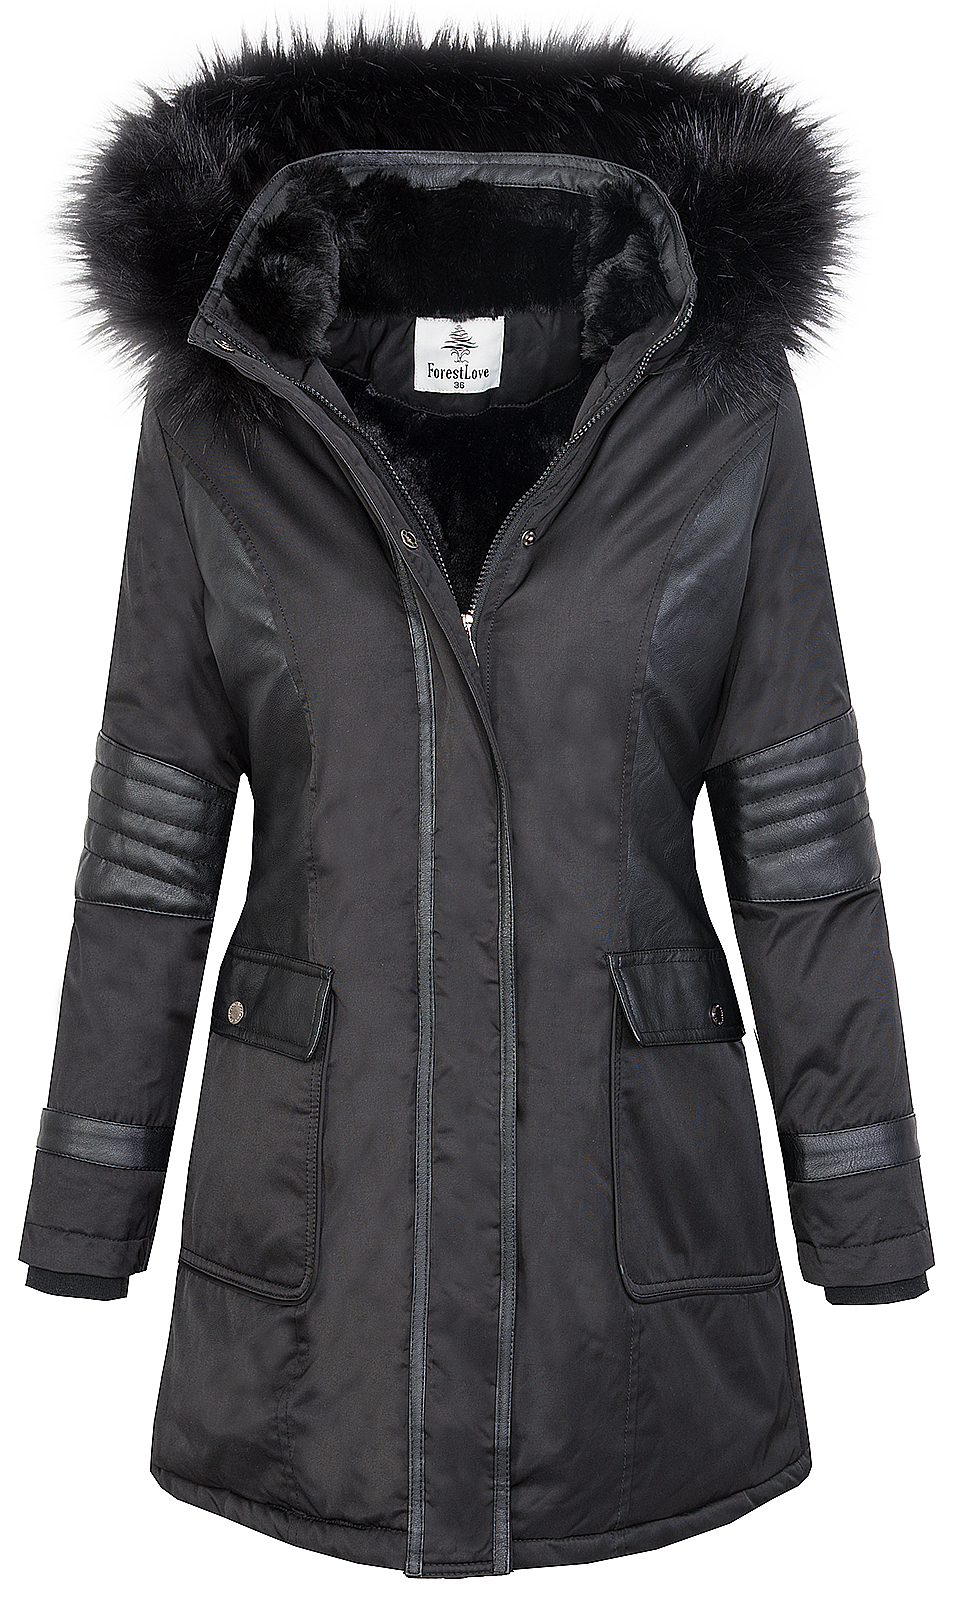 damen jacke outdoor jacke mantel parka winterjacke schwarz. Black Bedroom Furniture Sets. Home Design Ideas